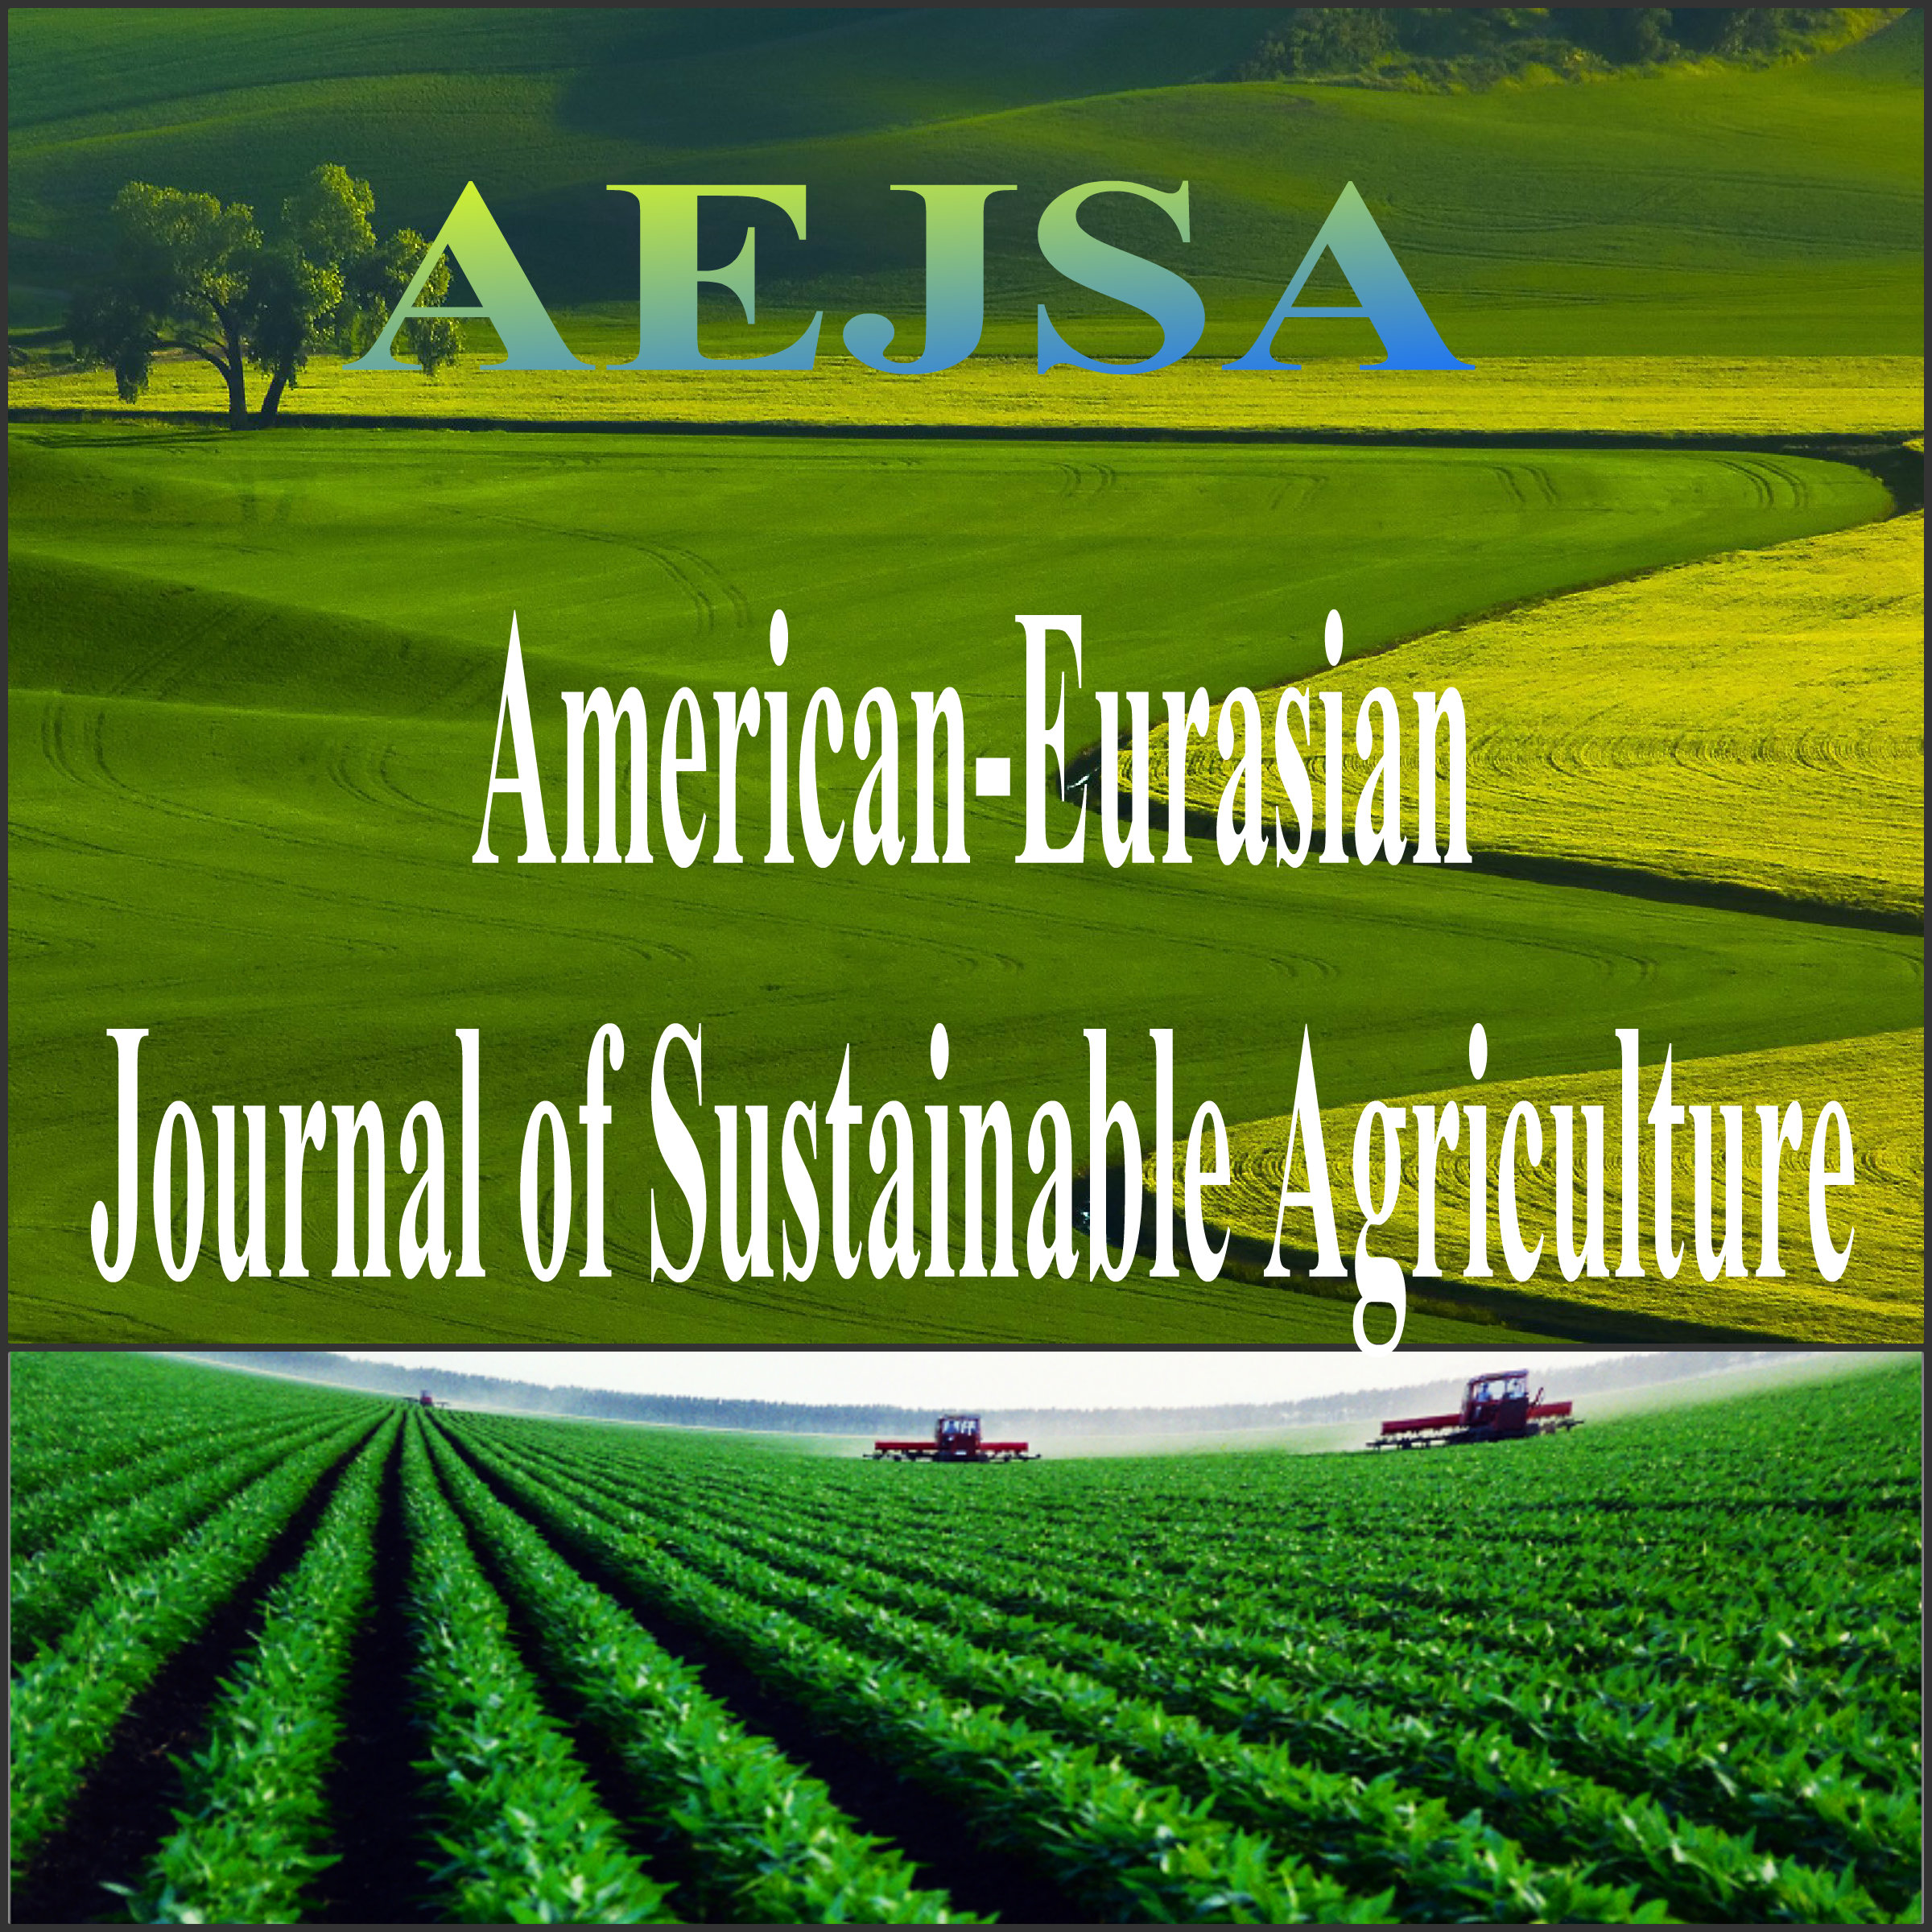 international journal of agricultural sustainability Accept this website uses cookies to ensure you get the best experience on our website.